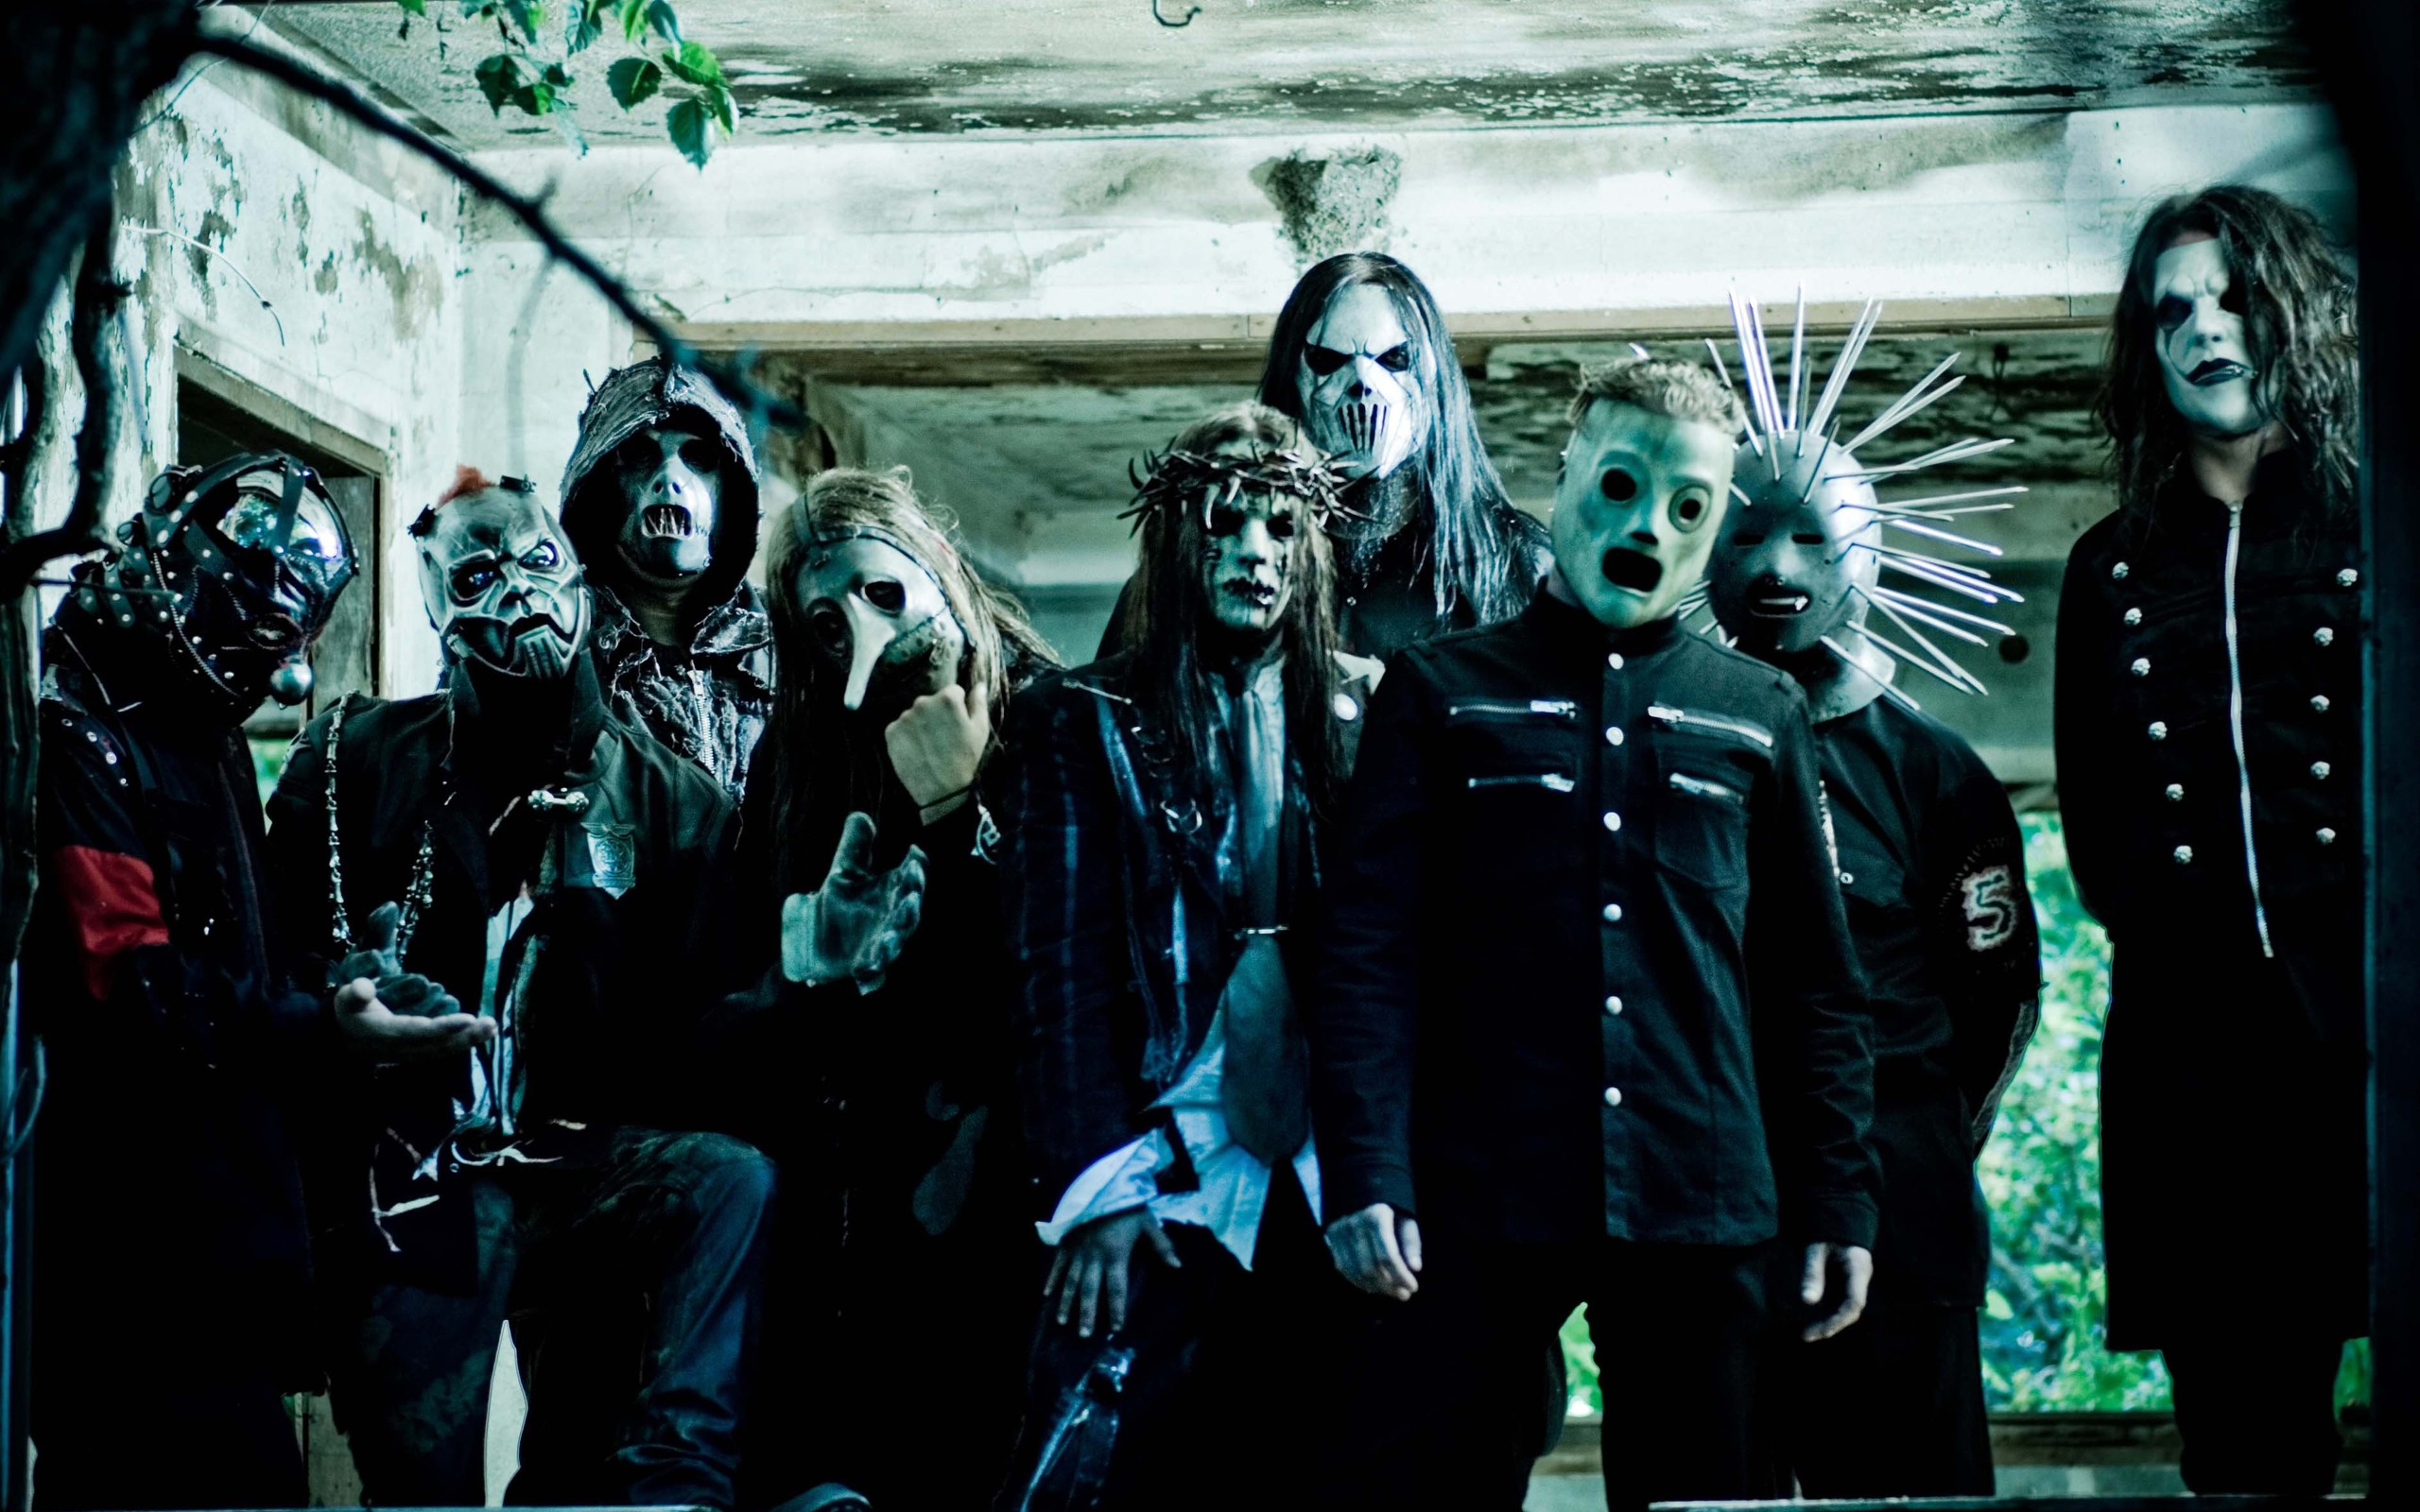 Slipknot Wallpapers HD A3 HD Desktop Wallpapers 4k HD